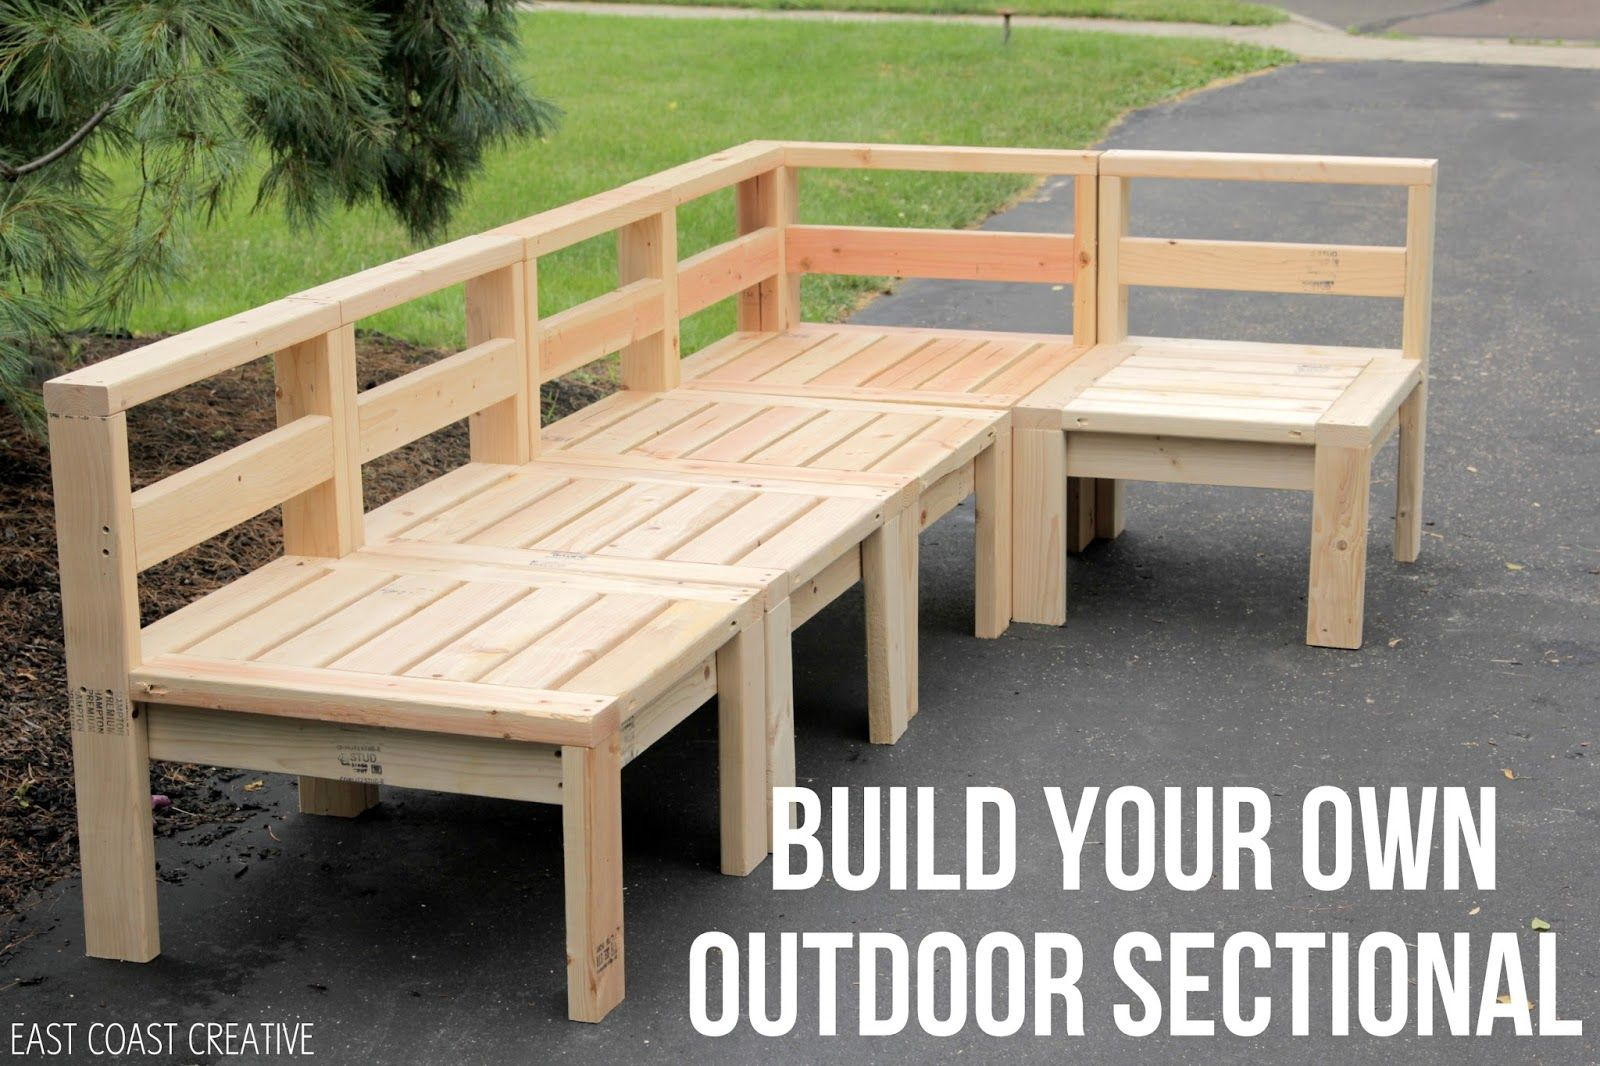 Diy outdoor sofa - Construction Plans For Outdoor Sectionals Viewing Gallery For Outdoor Pallet Couch Plans